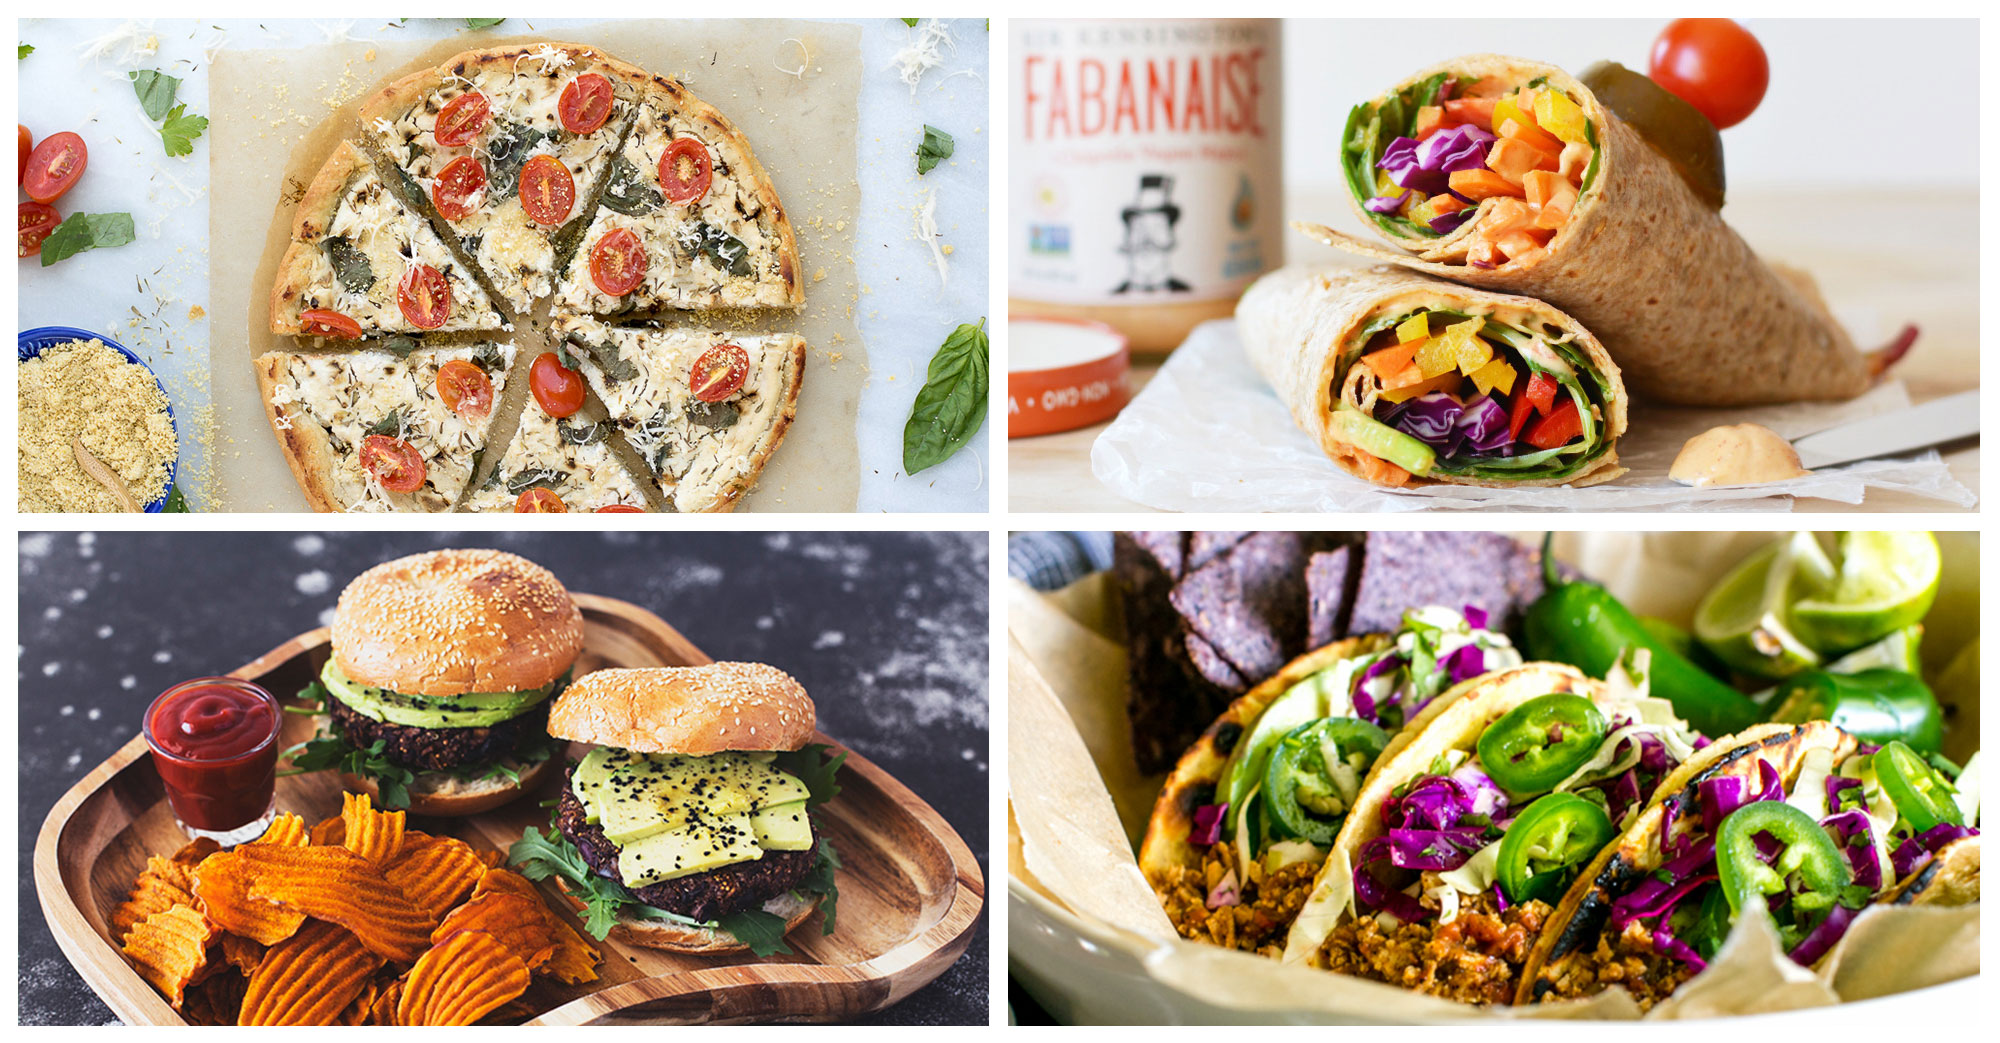 51 Vegan Lunch Recipes – Soups, Salads, Sandwiches & More!